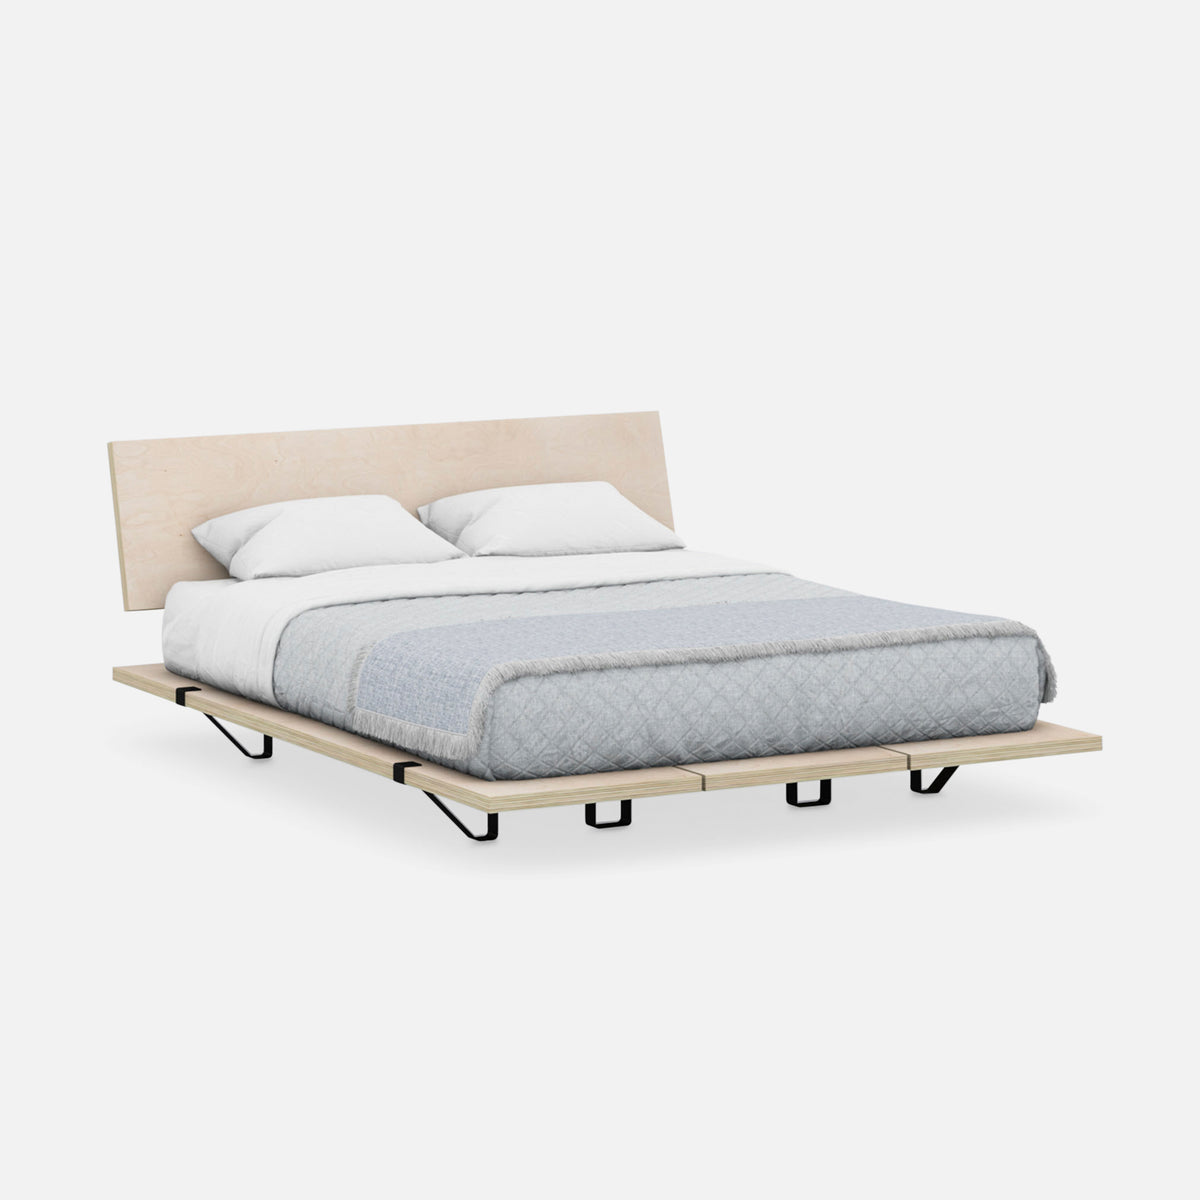 The Floyd Platform Bed with Headboard / Birch and Black